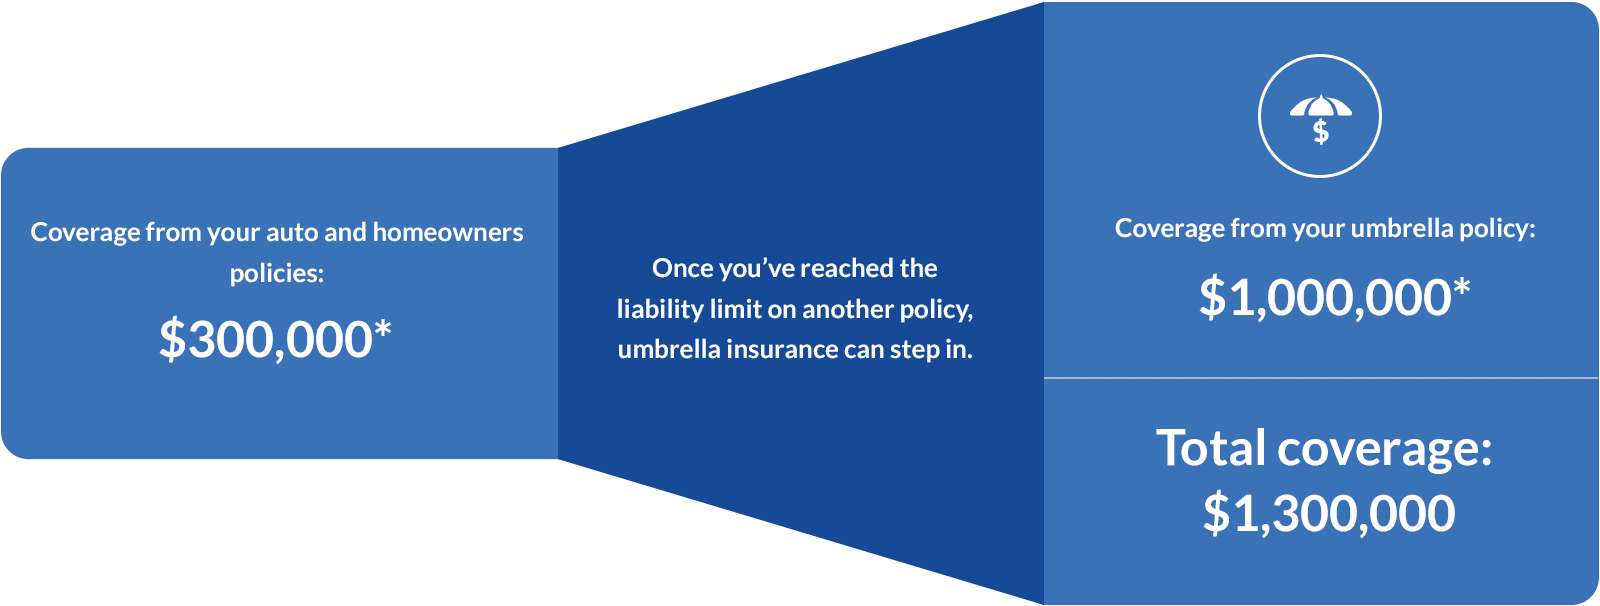 Umbrella Insurance Quote Umbrella Insurance  Get A Free Quote Today  Geico®